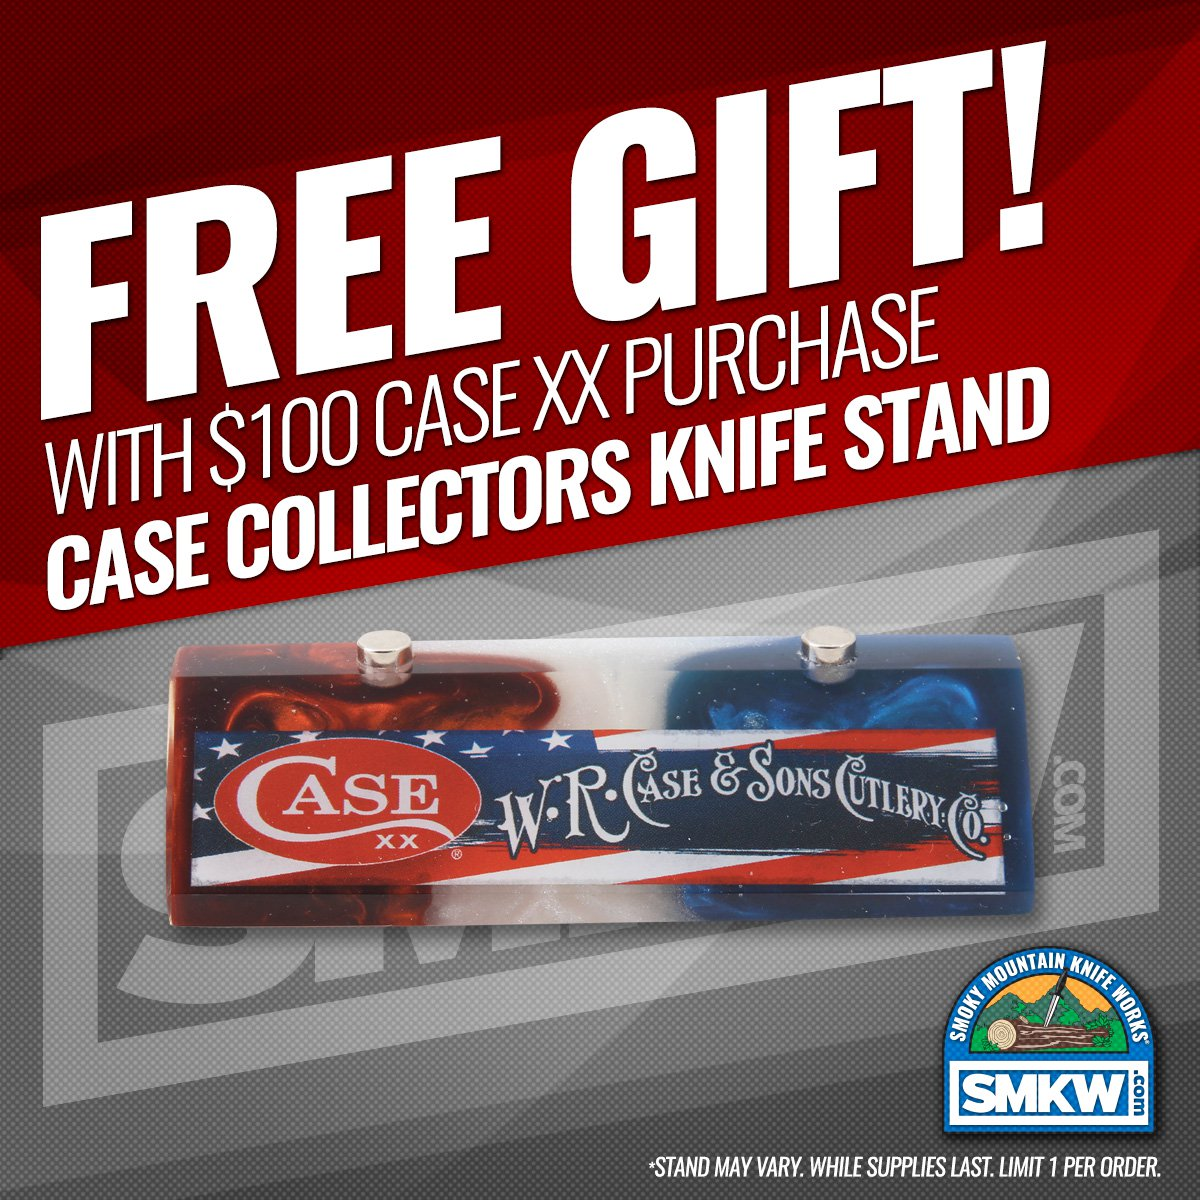 FREE! Case Magnetic Knife Stand (Stand May Vary) with $100 Case purchase. Limit (1) per order while supplies last. Offer expires 12/31/20.